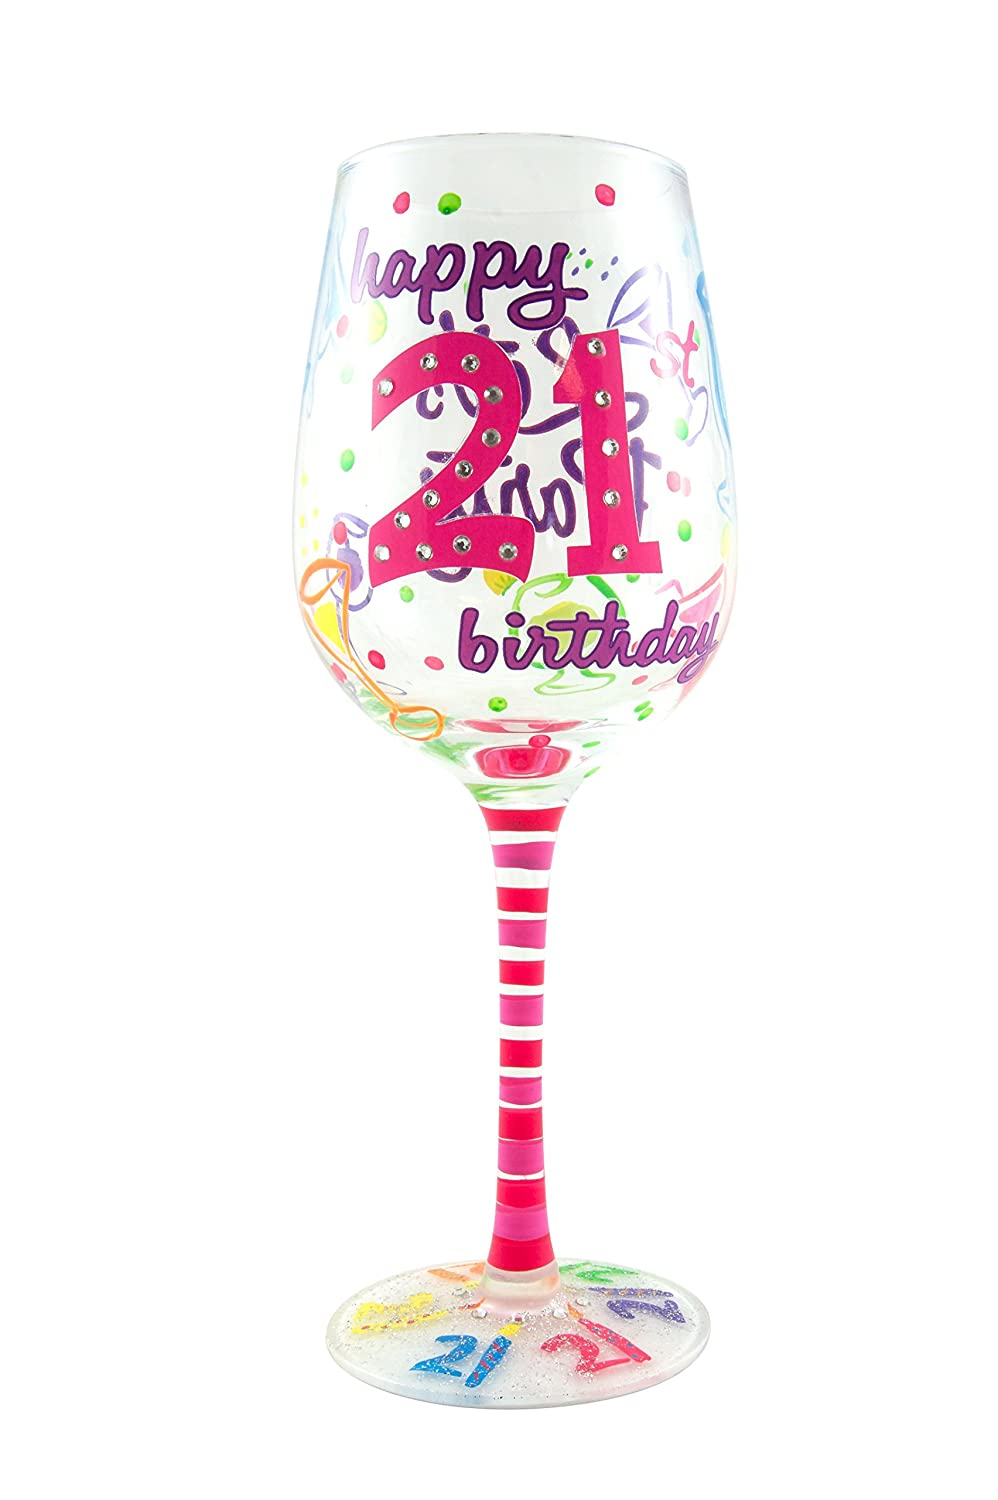 Top Shelf 21st Birthday Wine Glass Hand Painted Unique Gift Idea Amazon In Shoes Handbags